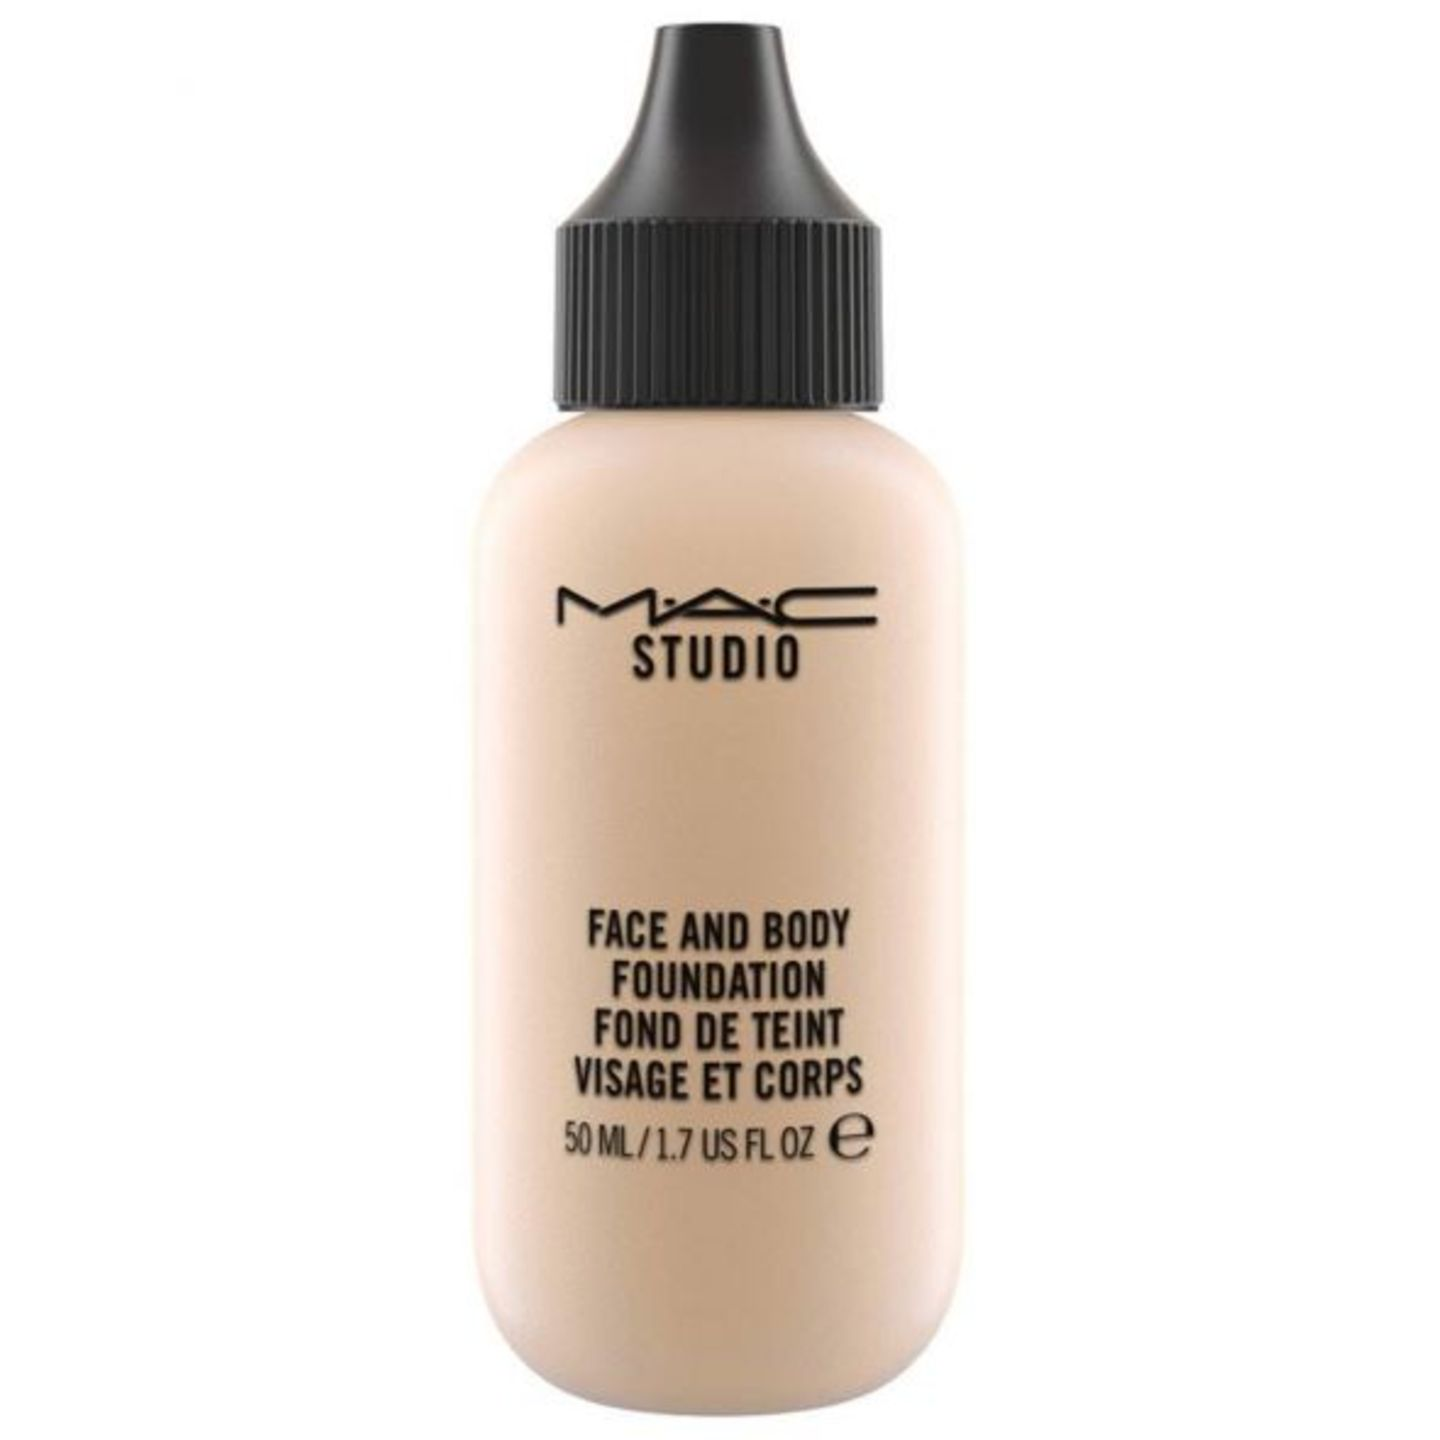 Beauty-Heroes: Face and Body Foundation